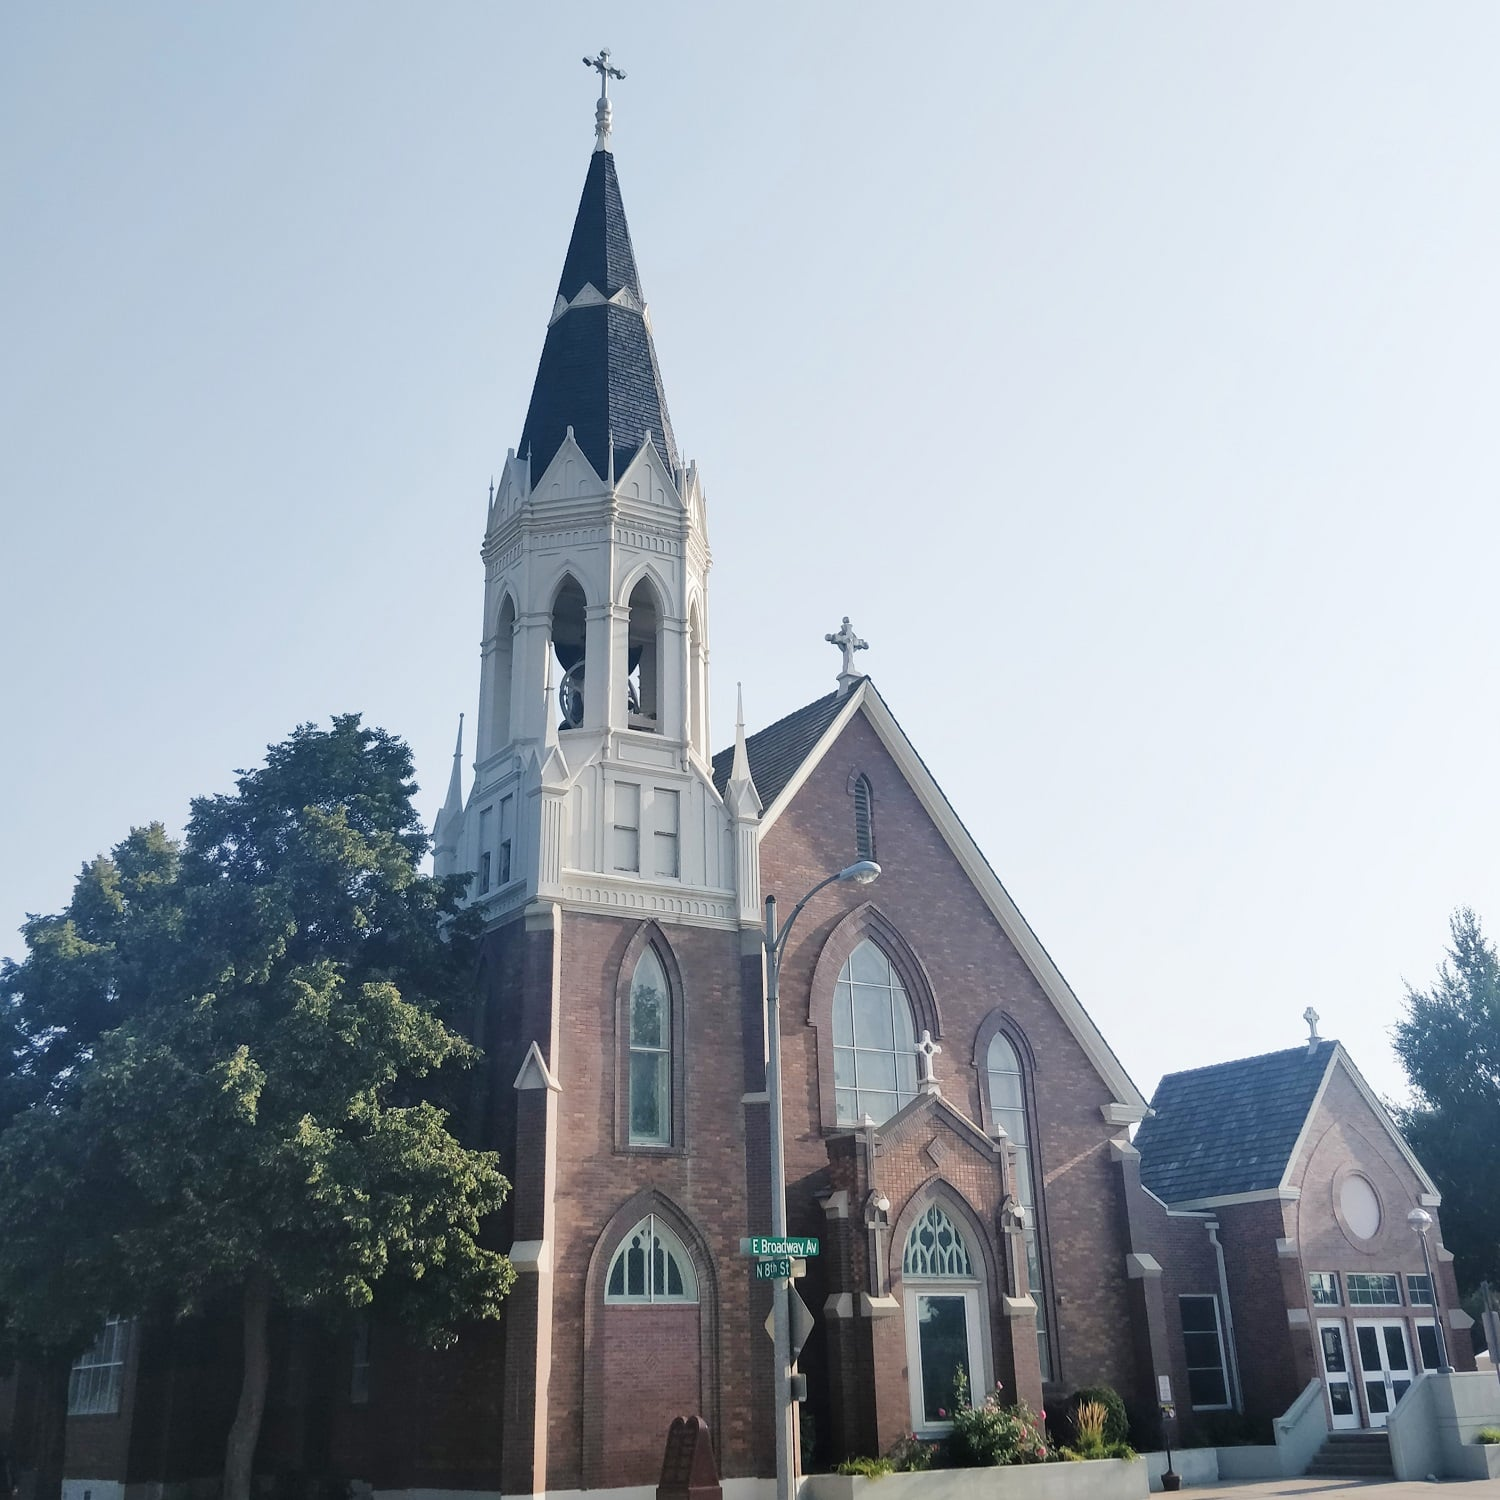 St. Mary's Parish, Bismarck